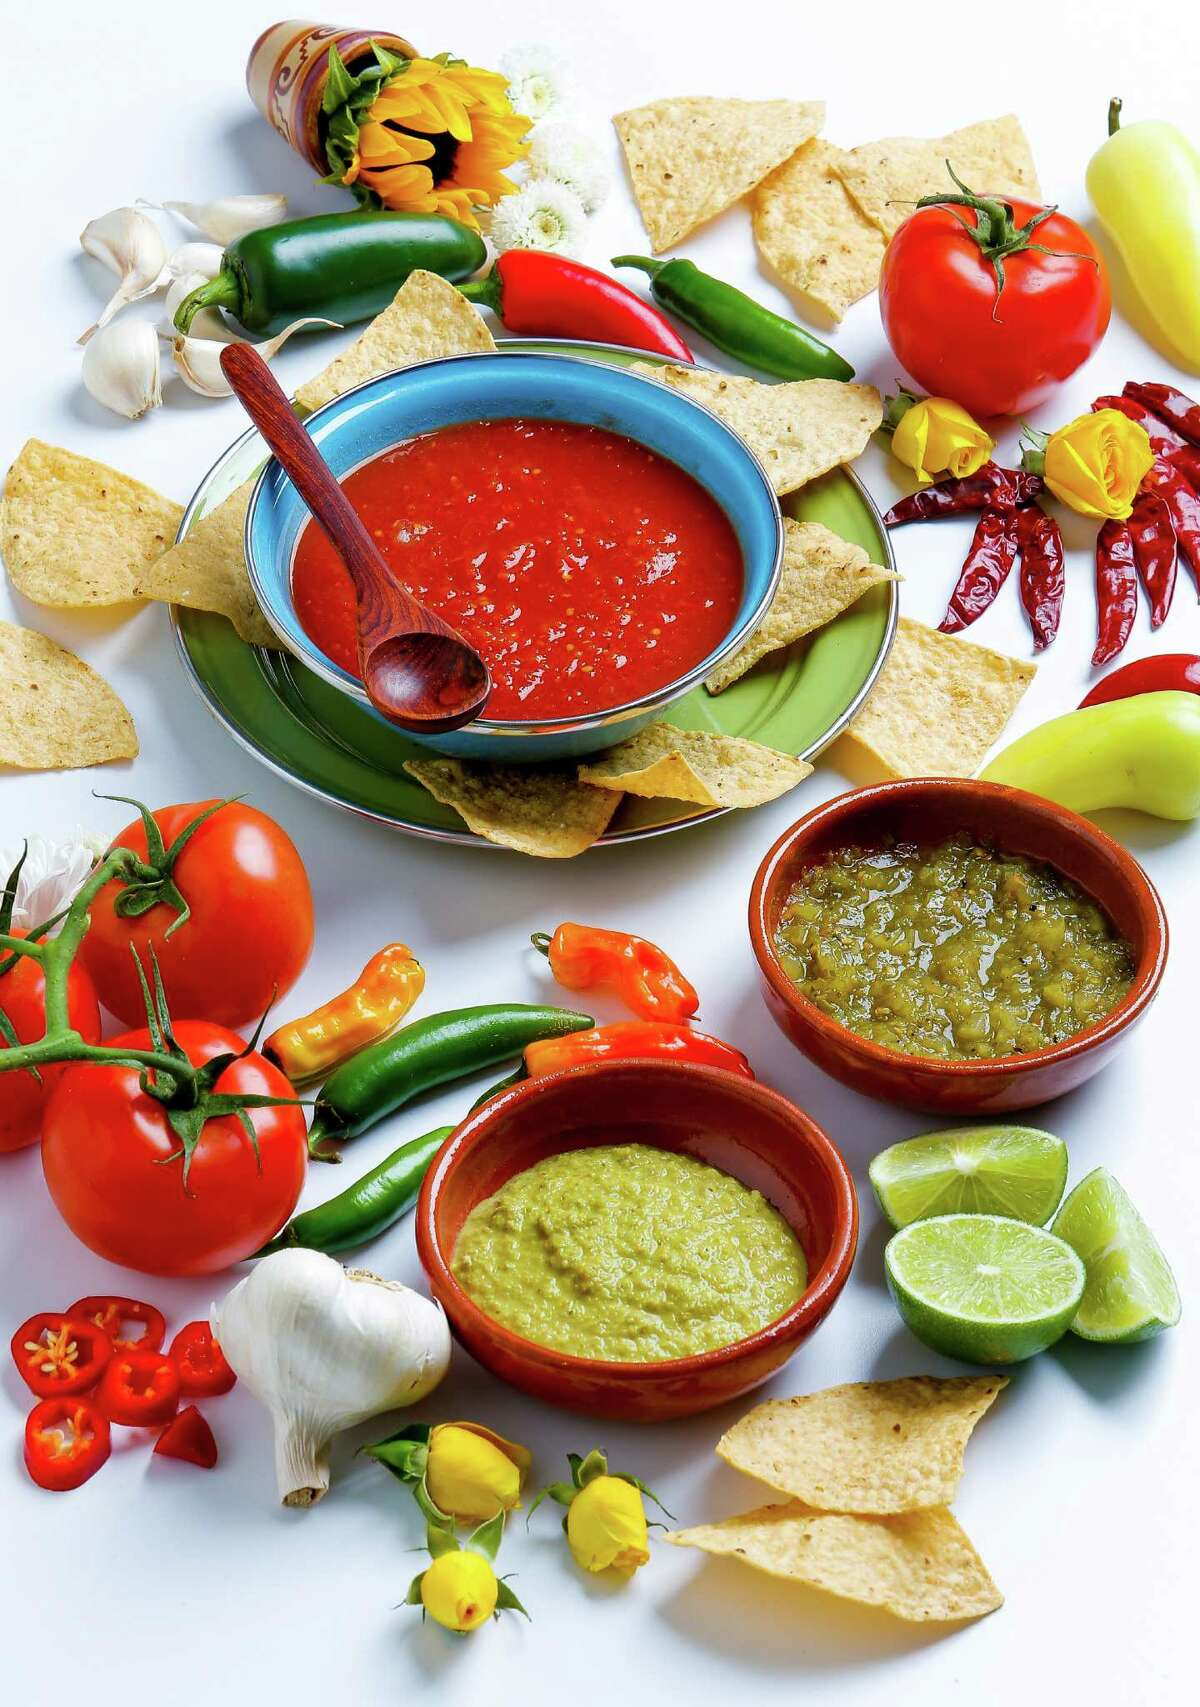 Hot or mild, salsa generally incorporates garlic, tomato and peppers. Houston restaurants can rise and fall by the quality of their versions. The following are ones the Chronicle food team has tasted over the past several months.